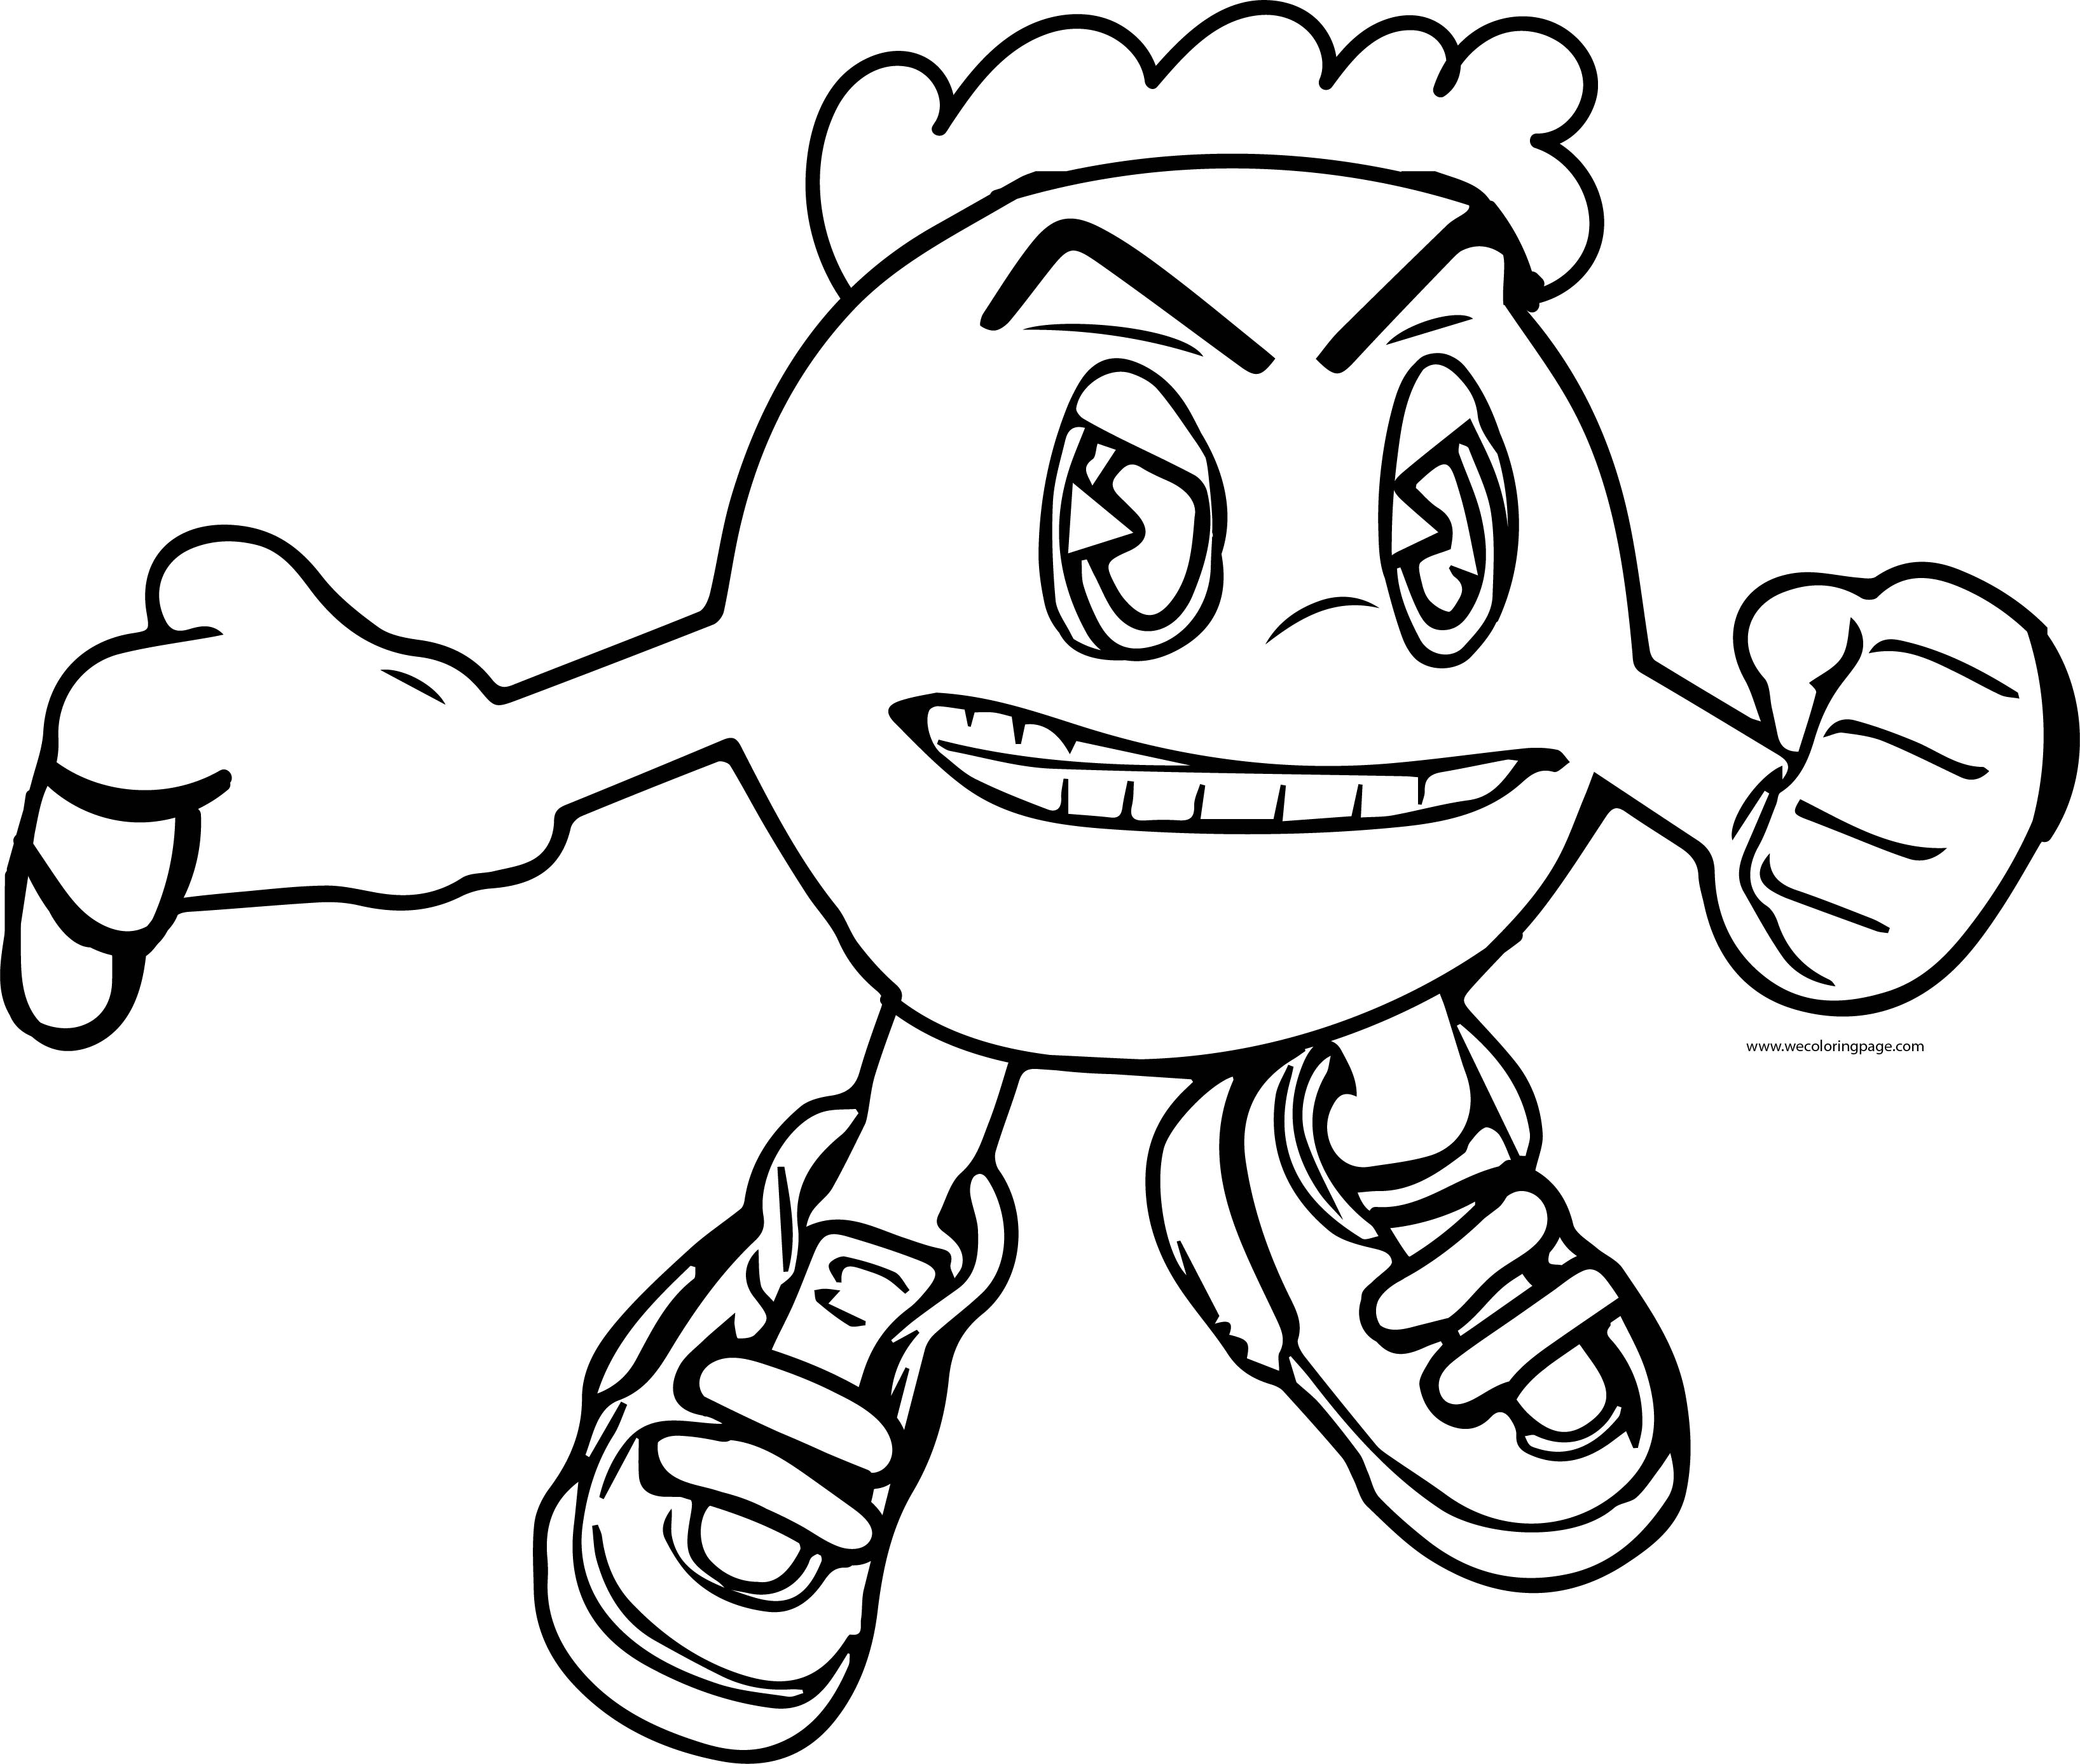 Angry Pacman Pac Man Fight Coloring Page | Wecoloringpage